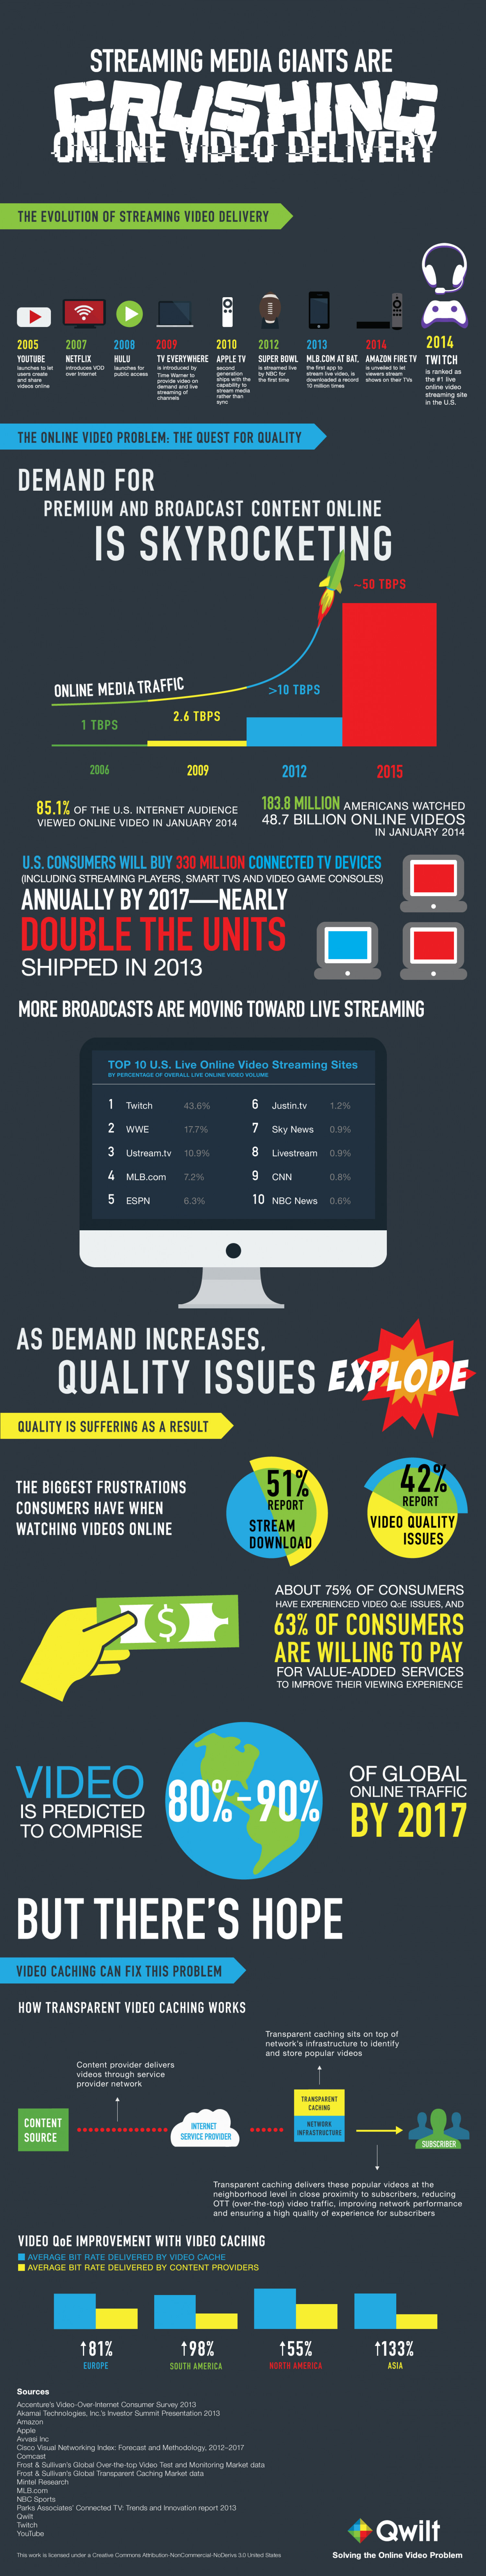 Streaming Media Giants are Crushing Online Video Delivery   Infographic